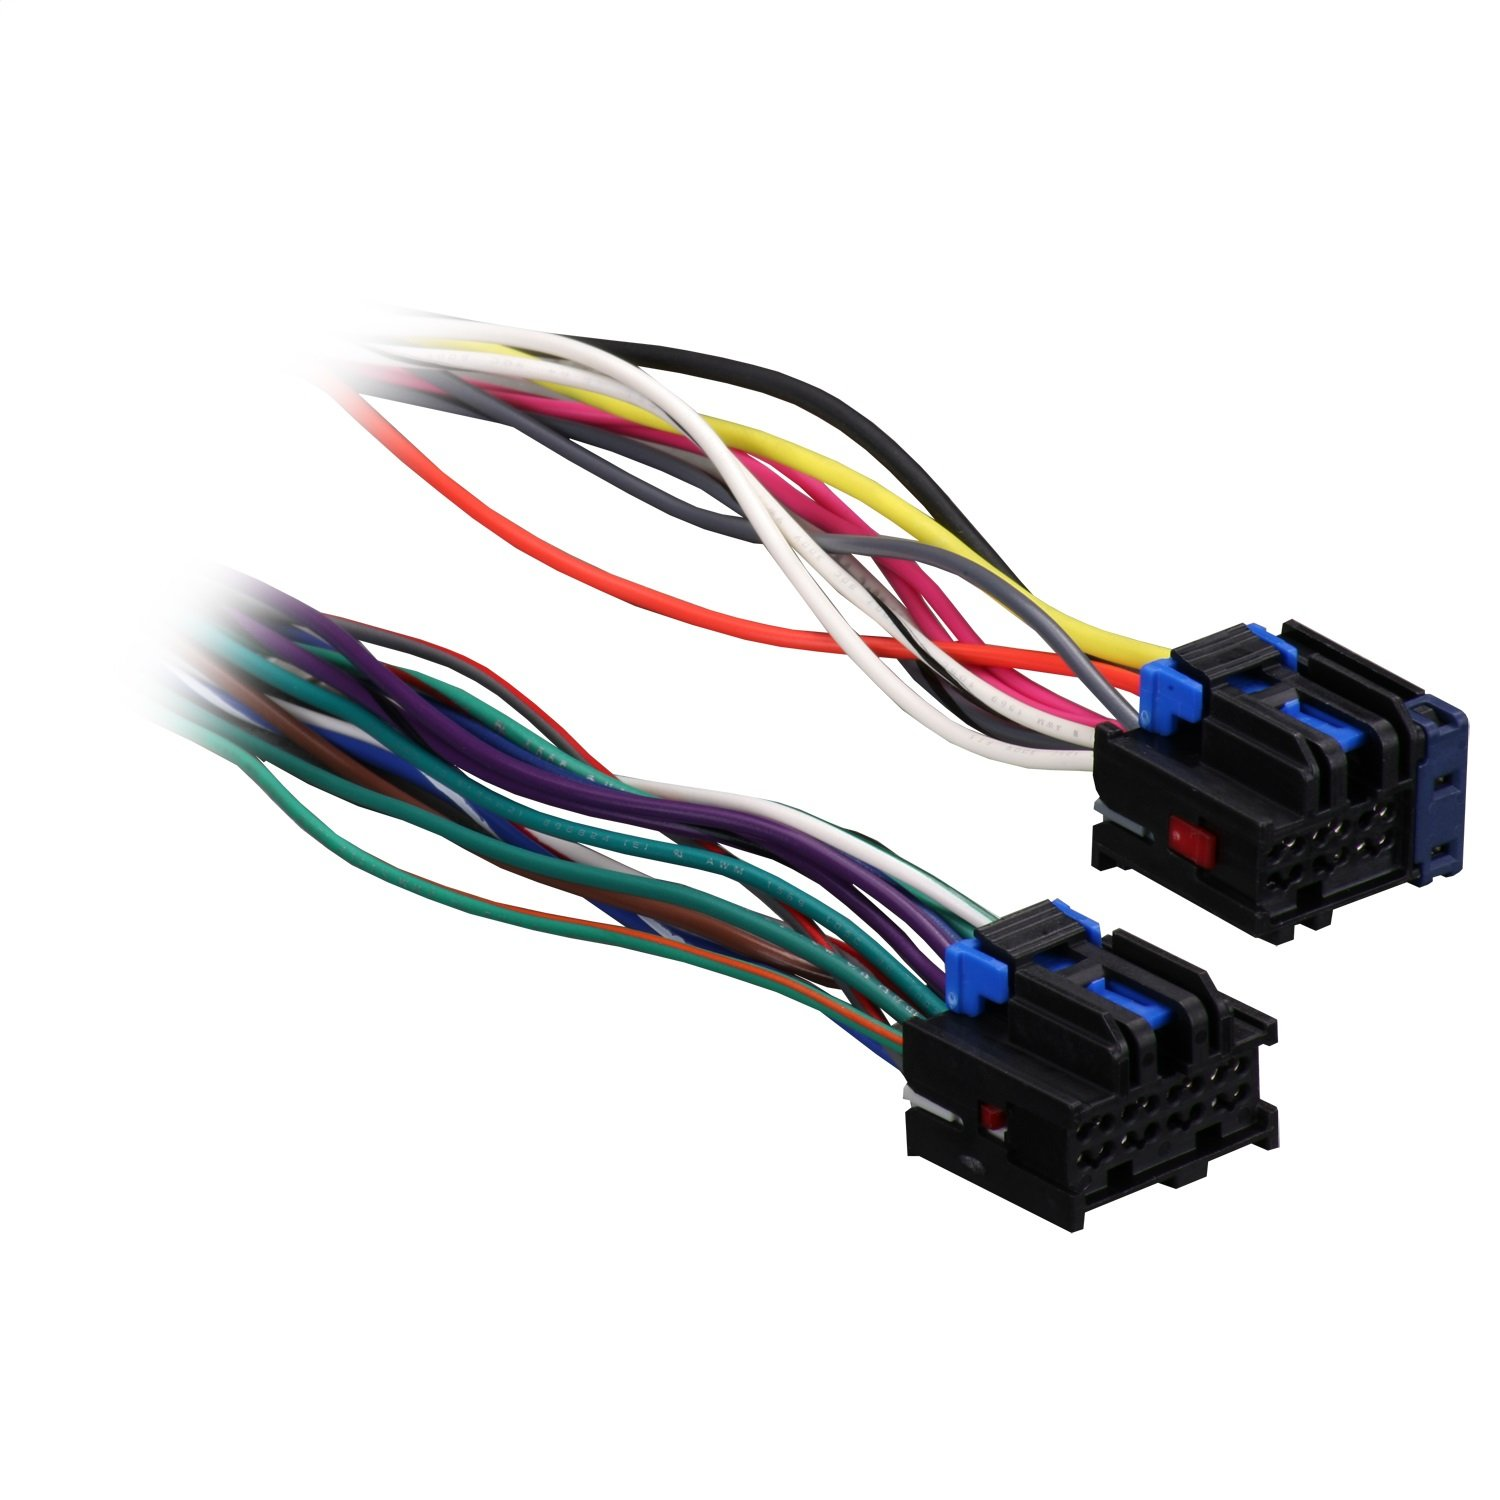 Amazon.com: Metra Reverse Wiring Harness 71-2104 for Select GM Vehicles  14/16 Way: Cell Phones & Accessories